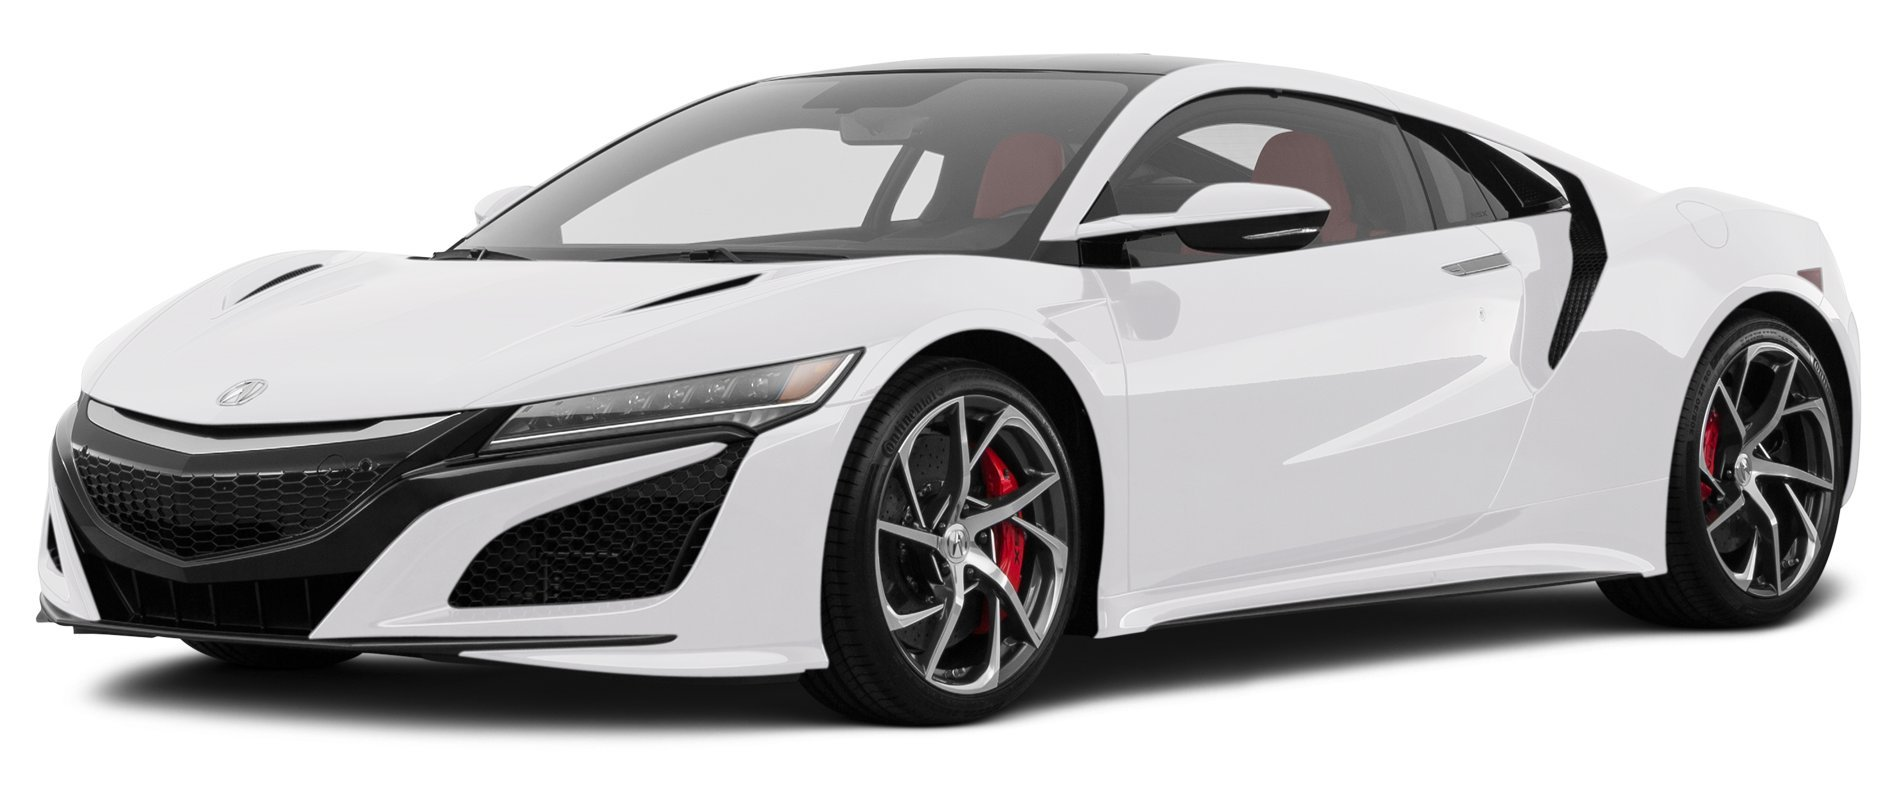 Amazon.com: 2018 Acura NSX Reviews, Images, and Specs: Vehicles